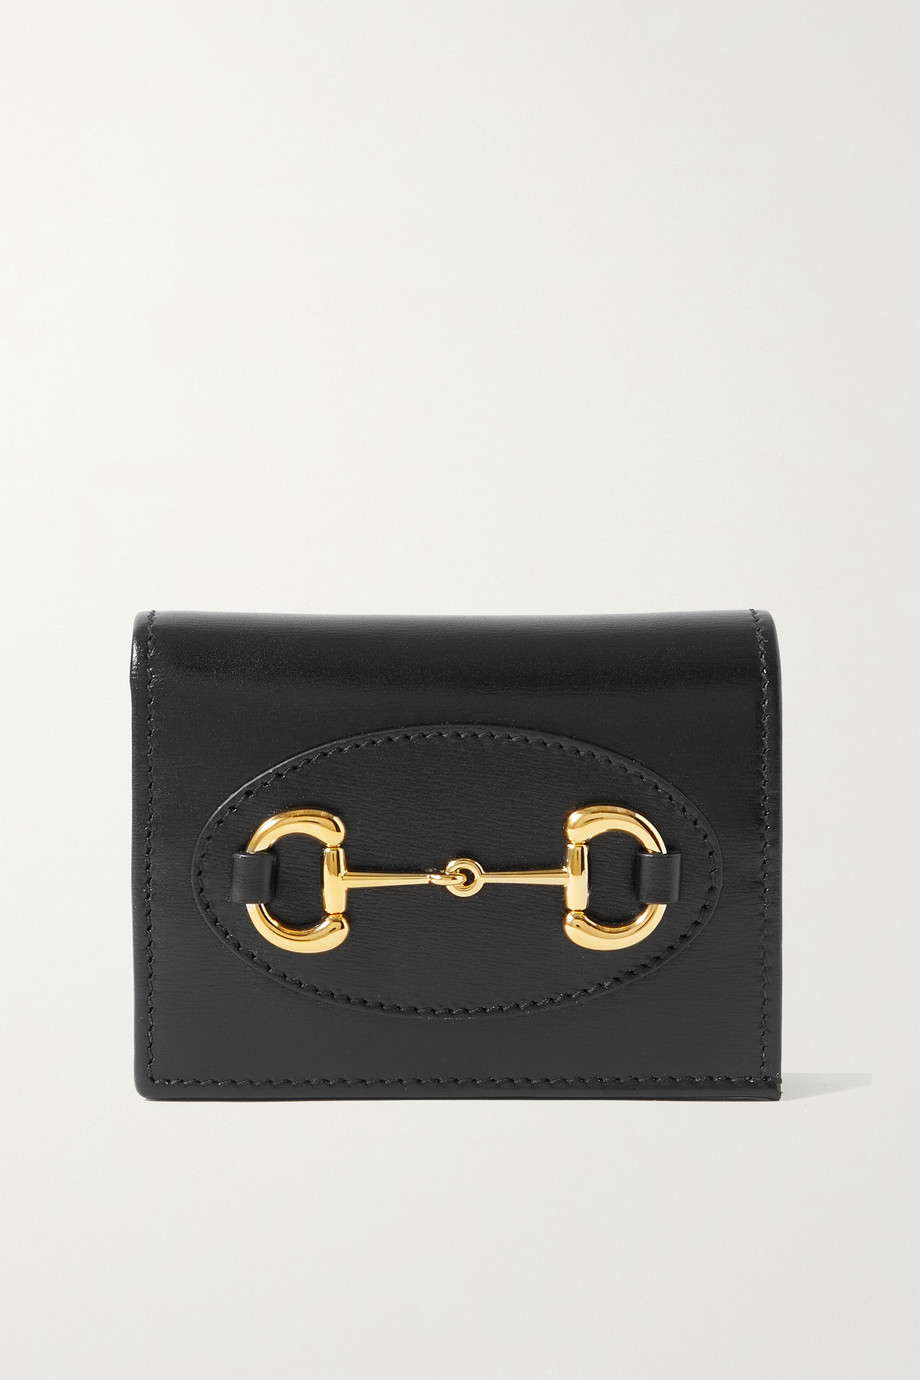 Gucci 1955 Horsebit leather wallet